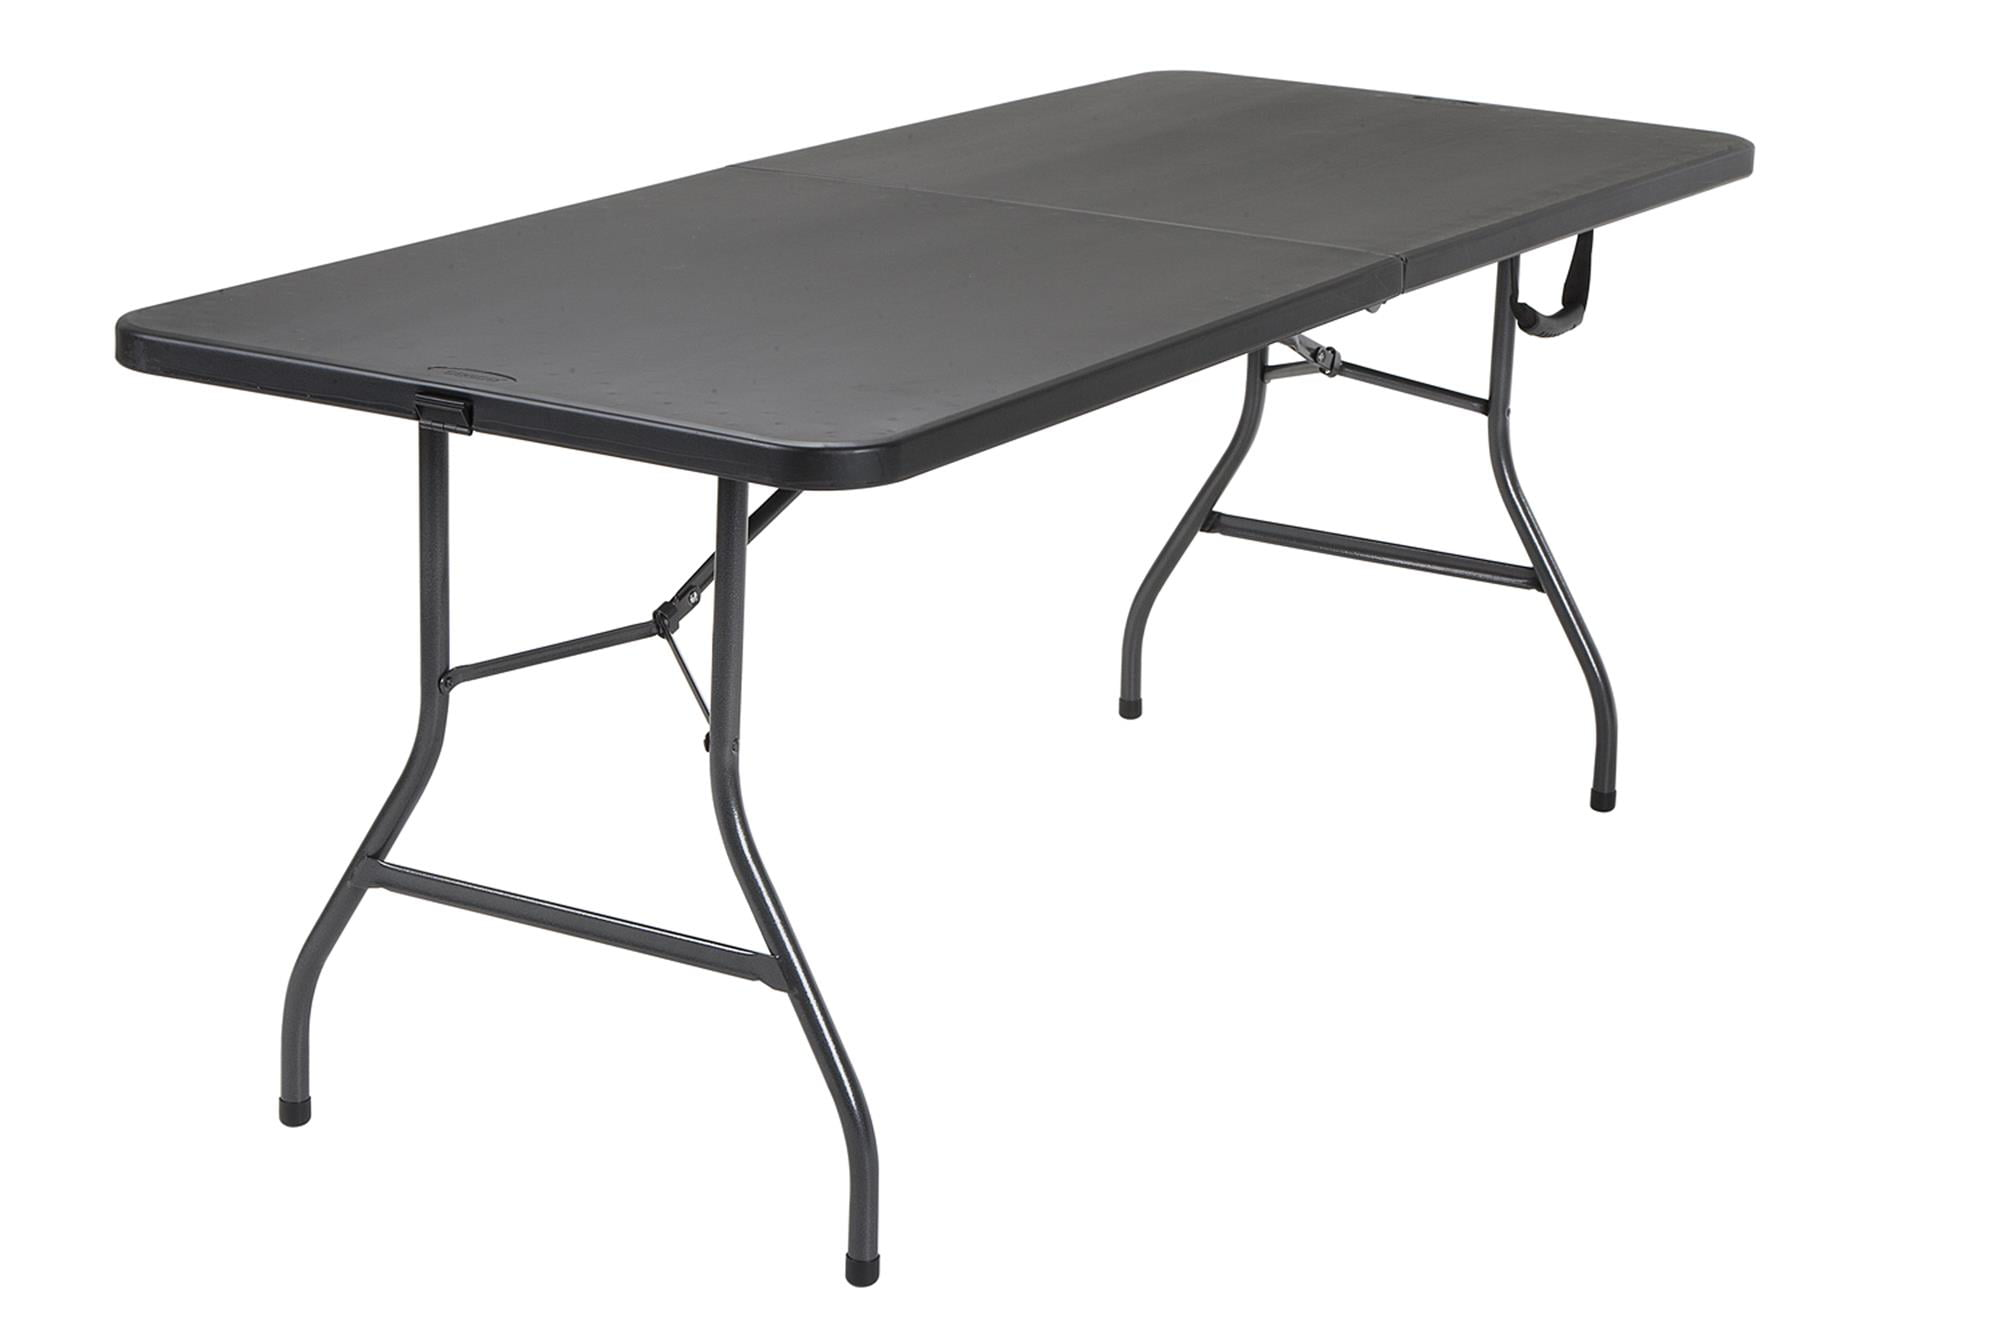 2 Pack Cosco 6 Foot Centerfold Folding Table Black